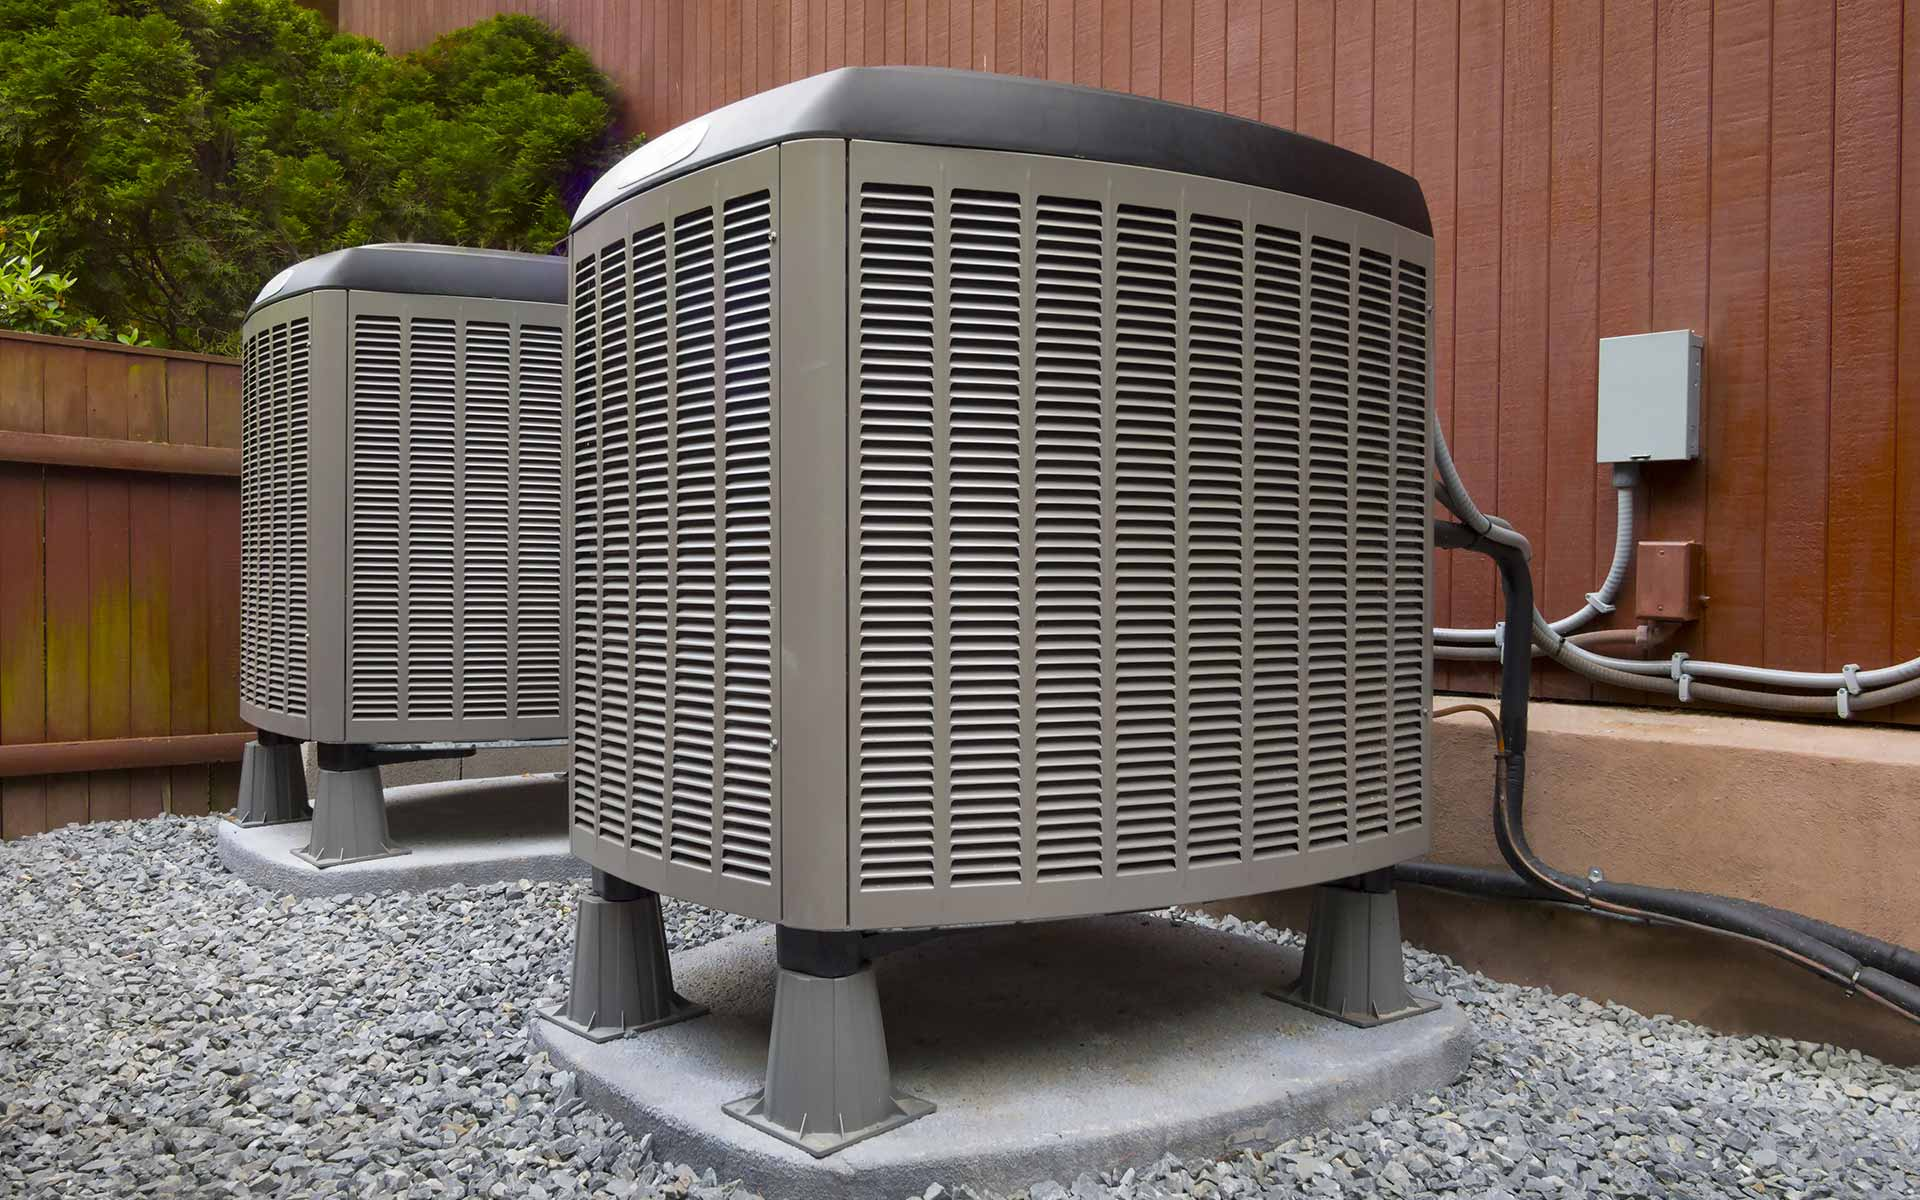 Get the most from your investment when it's time to upgrade your HVAC system. Howell, NJ